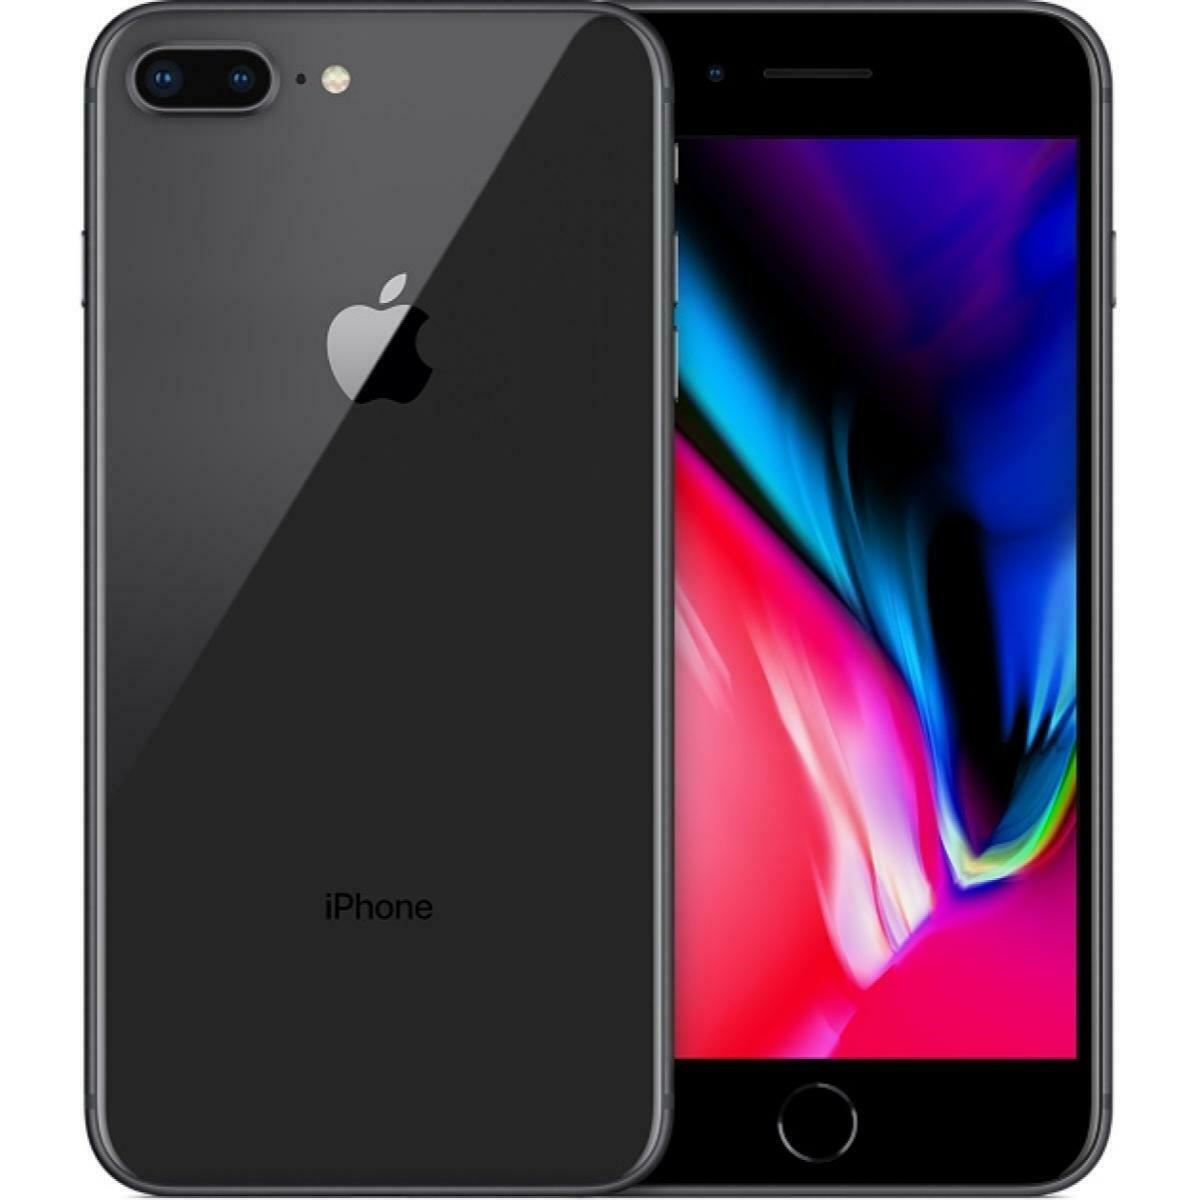 Apple iPhone 8 Plus 256GB Factory Unlocked AT&T T-Mobile Gray Smartphone